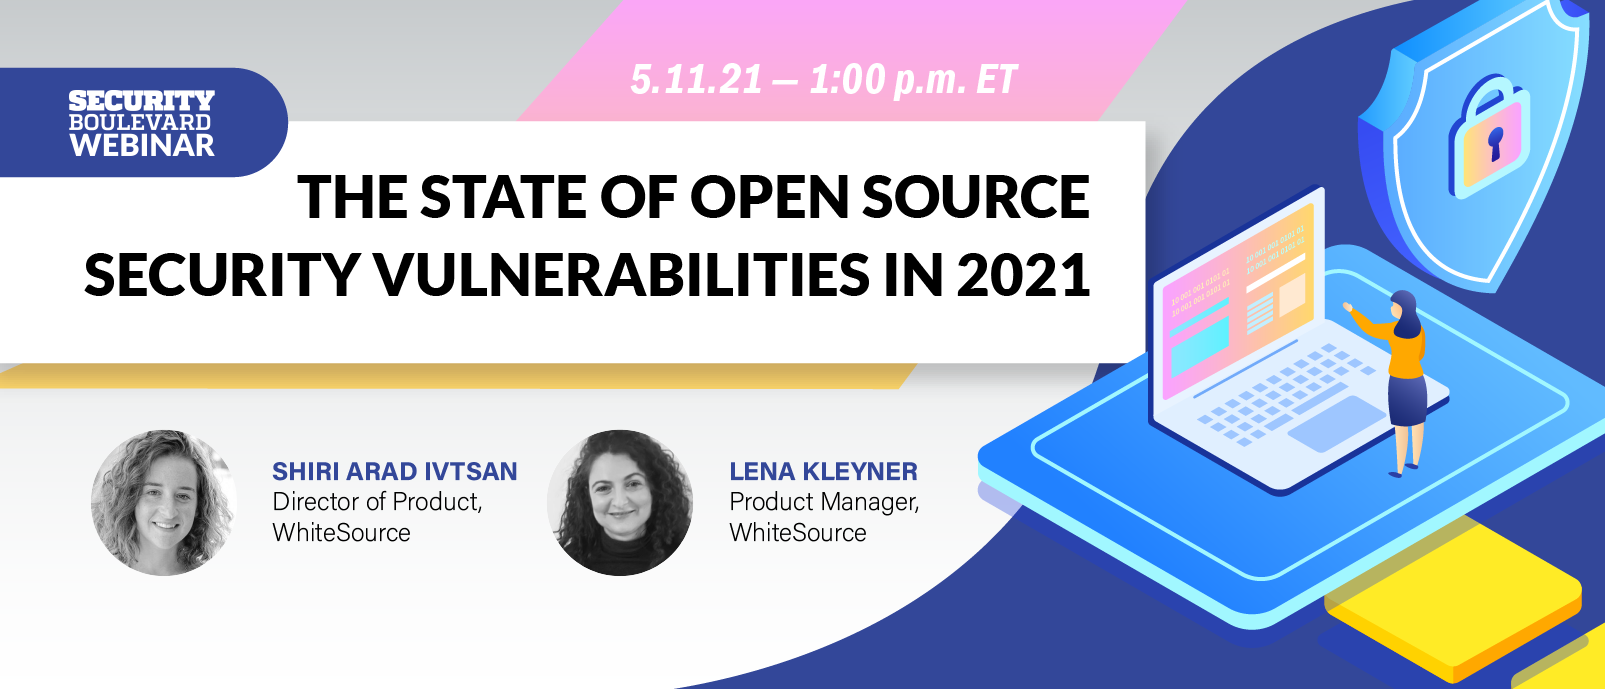 The State of Open Source Security Vulnerabilities in 2021